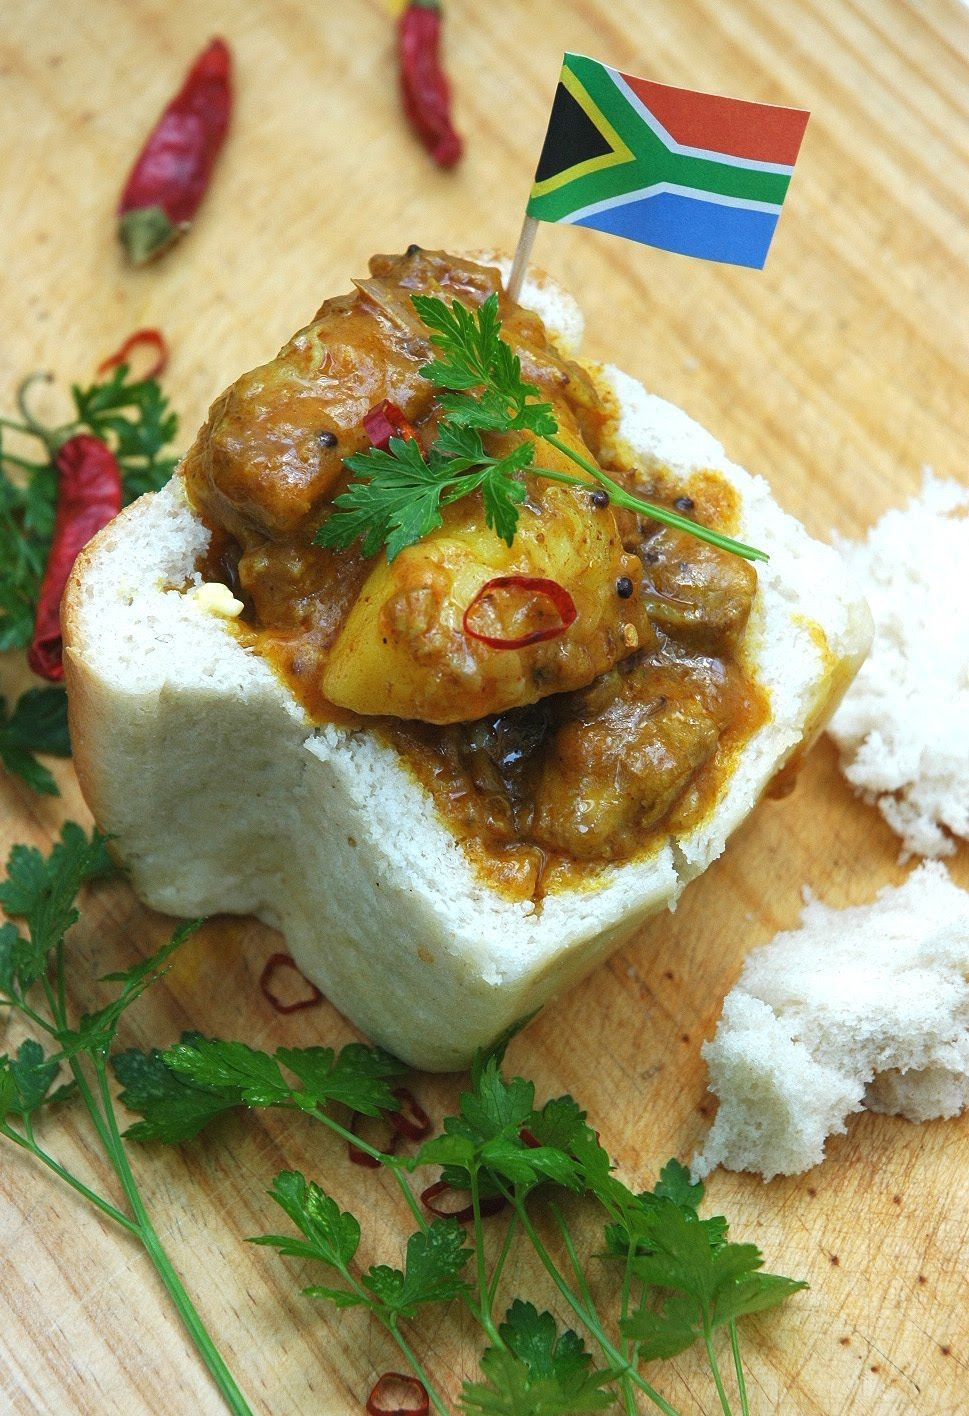 Bunny chow with lamb curry south african street food food bunny chow with lamb curry south african street food forumfinder Images